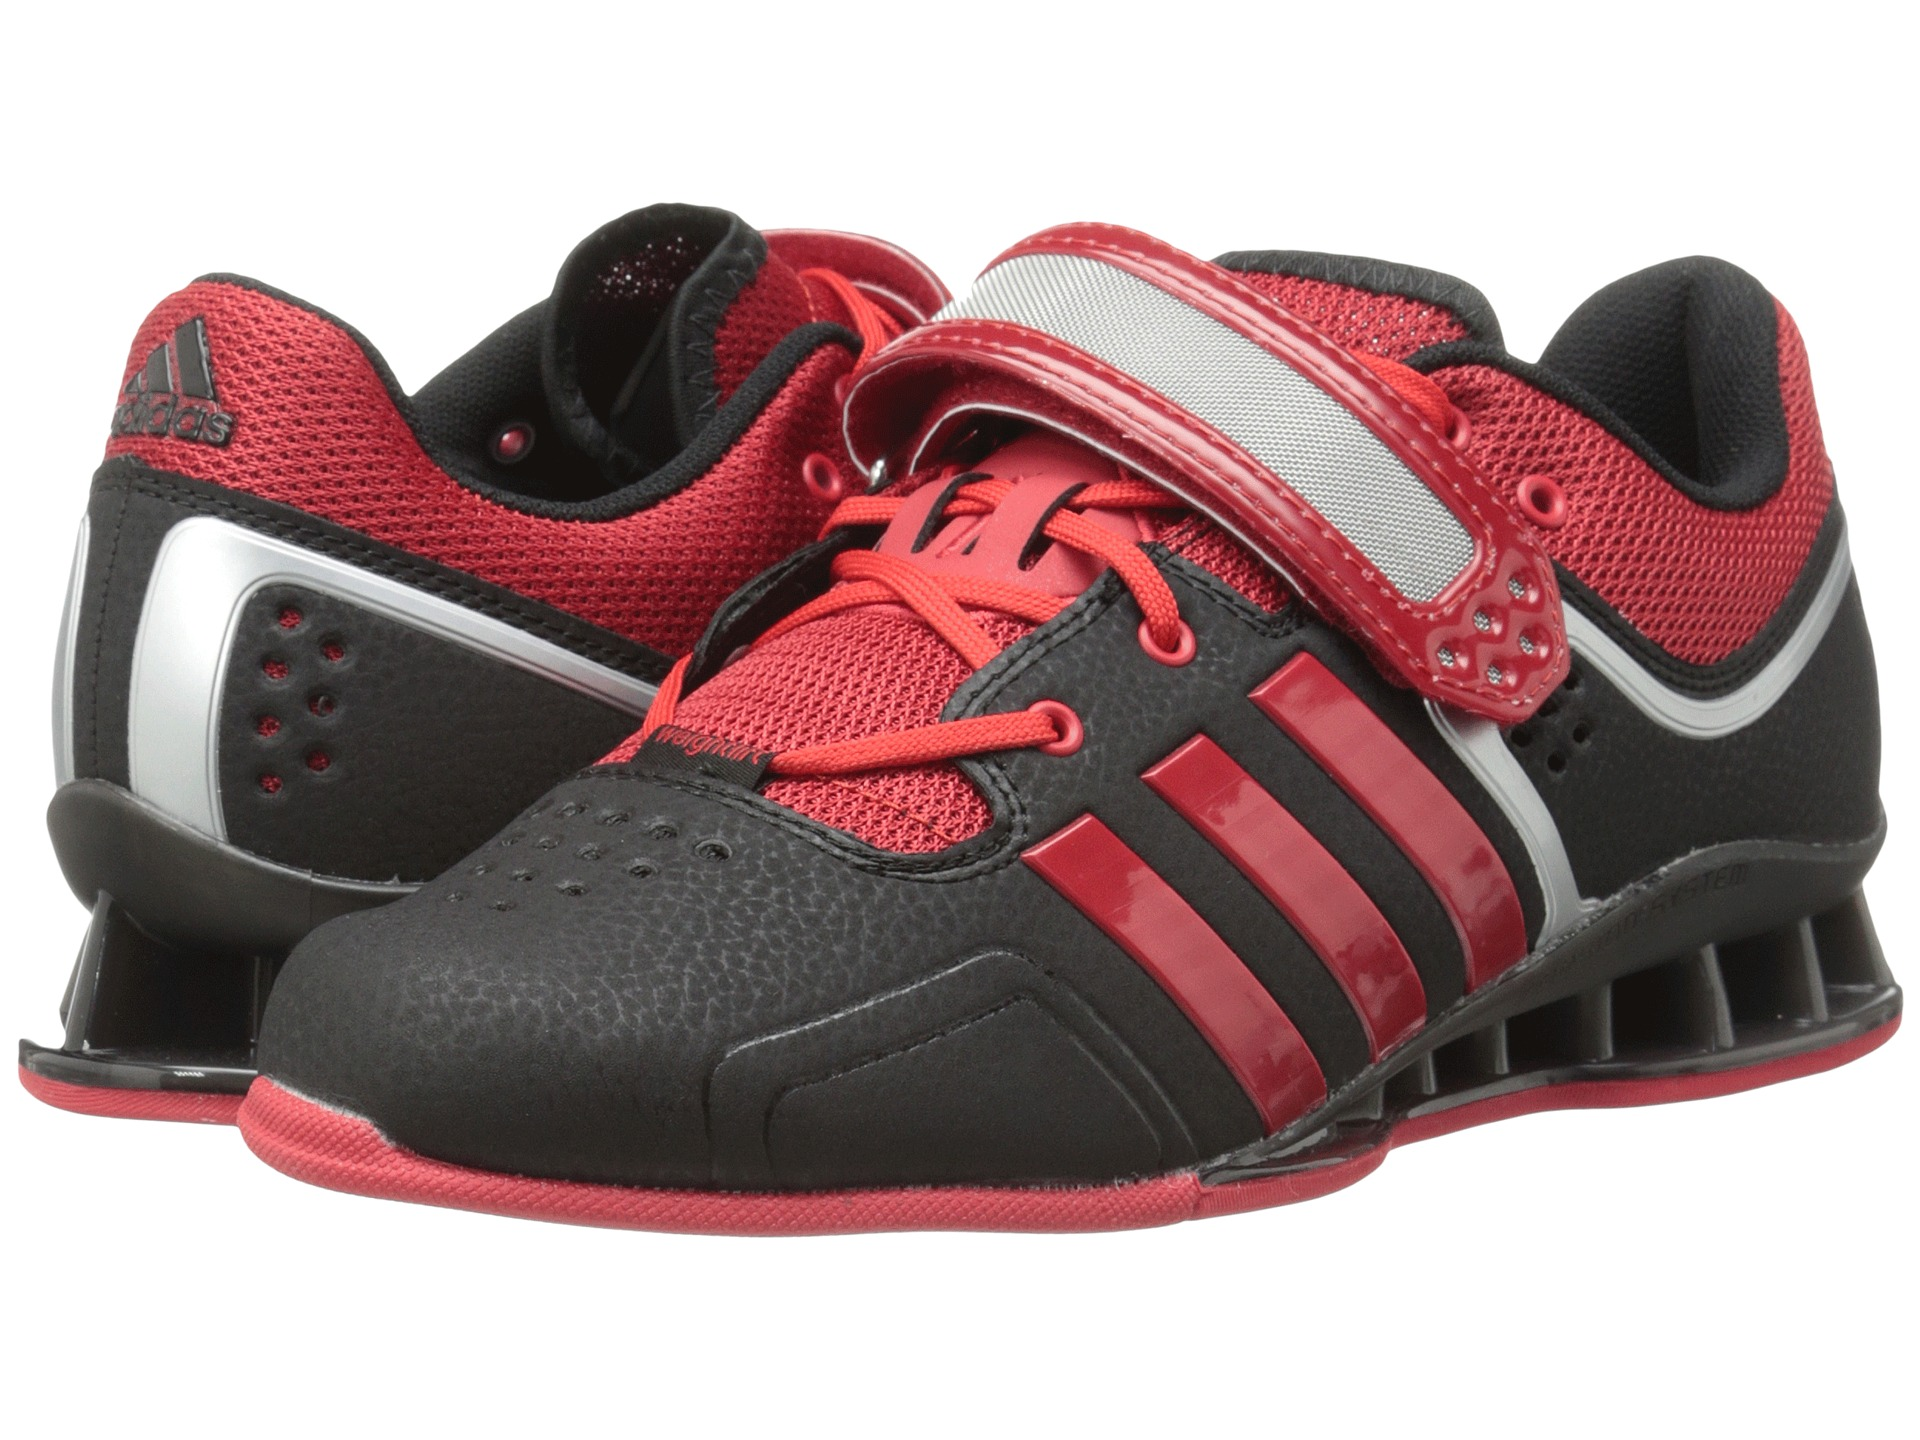 Adidas Men S Adipower Weightlift Shoes